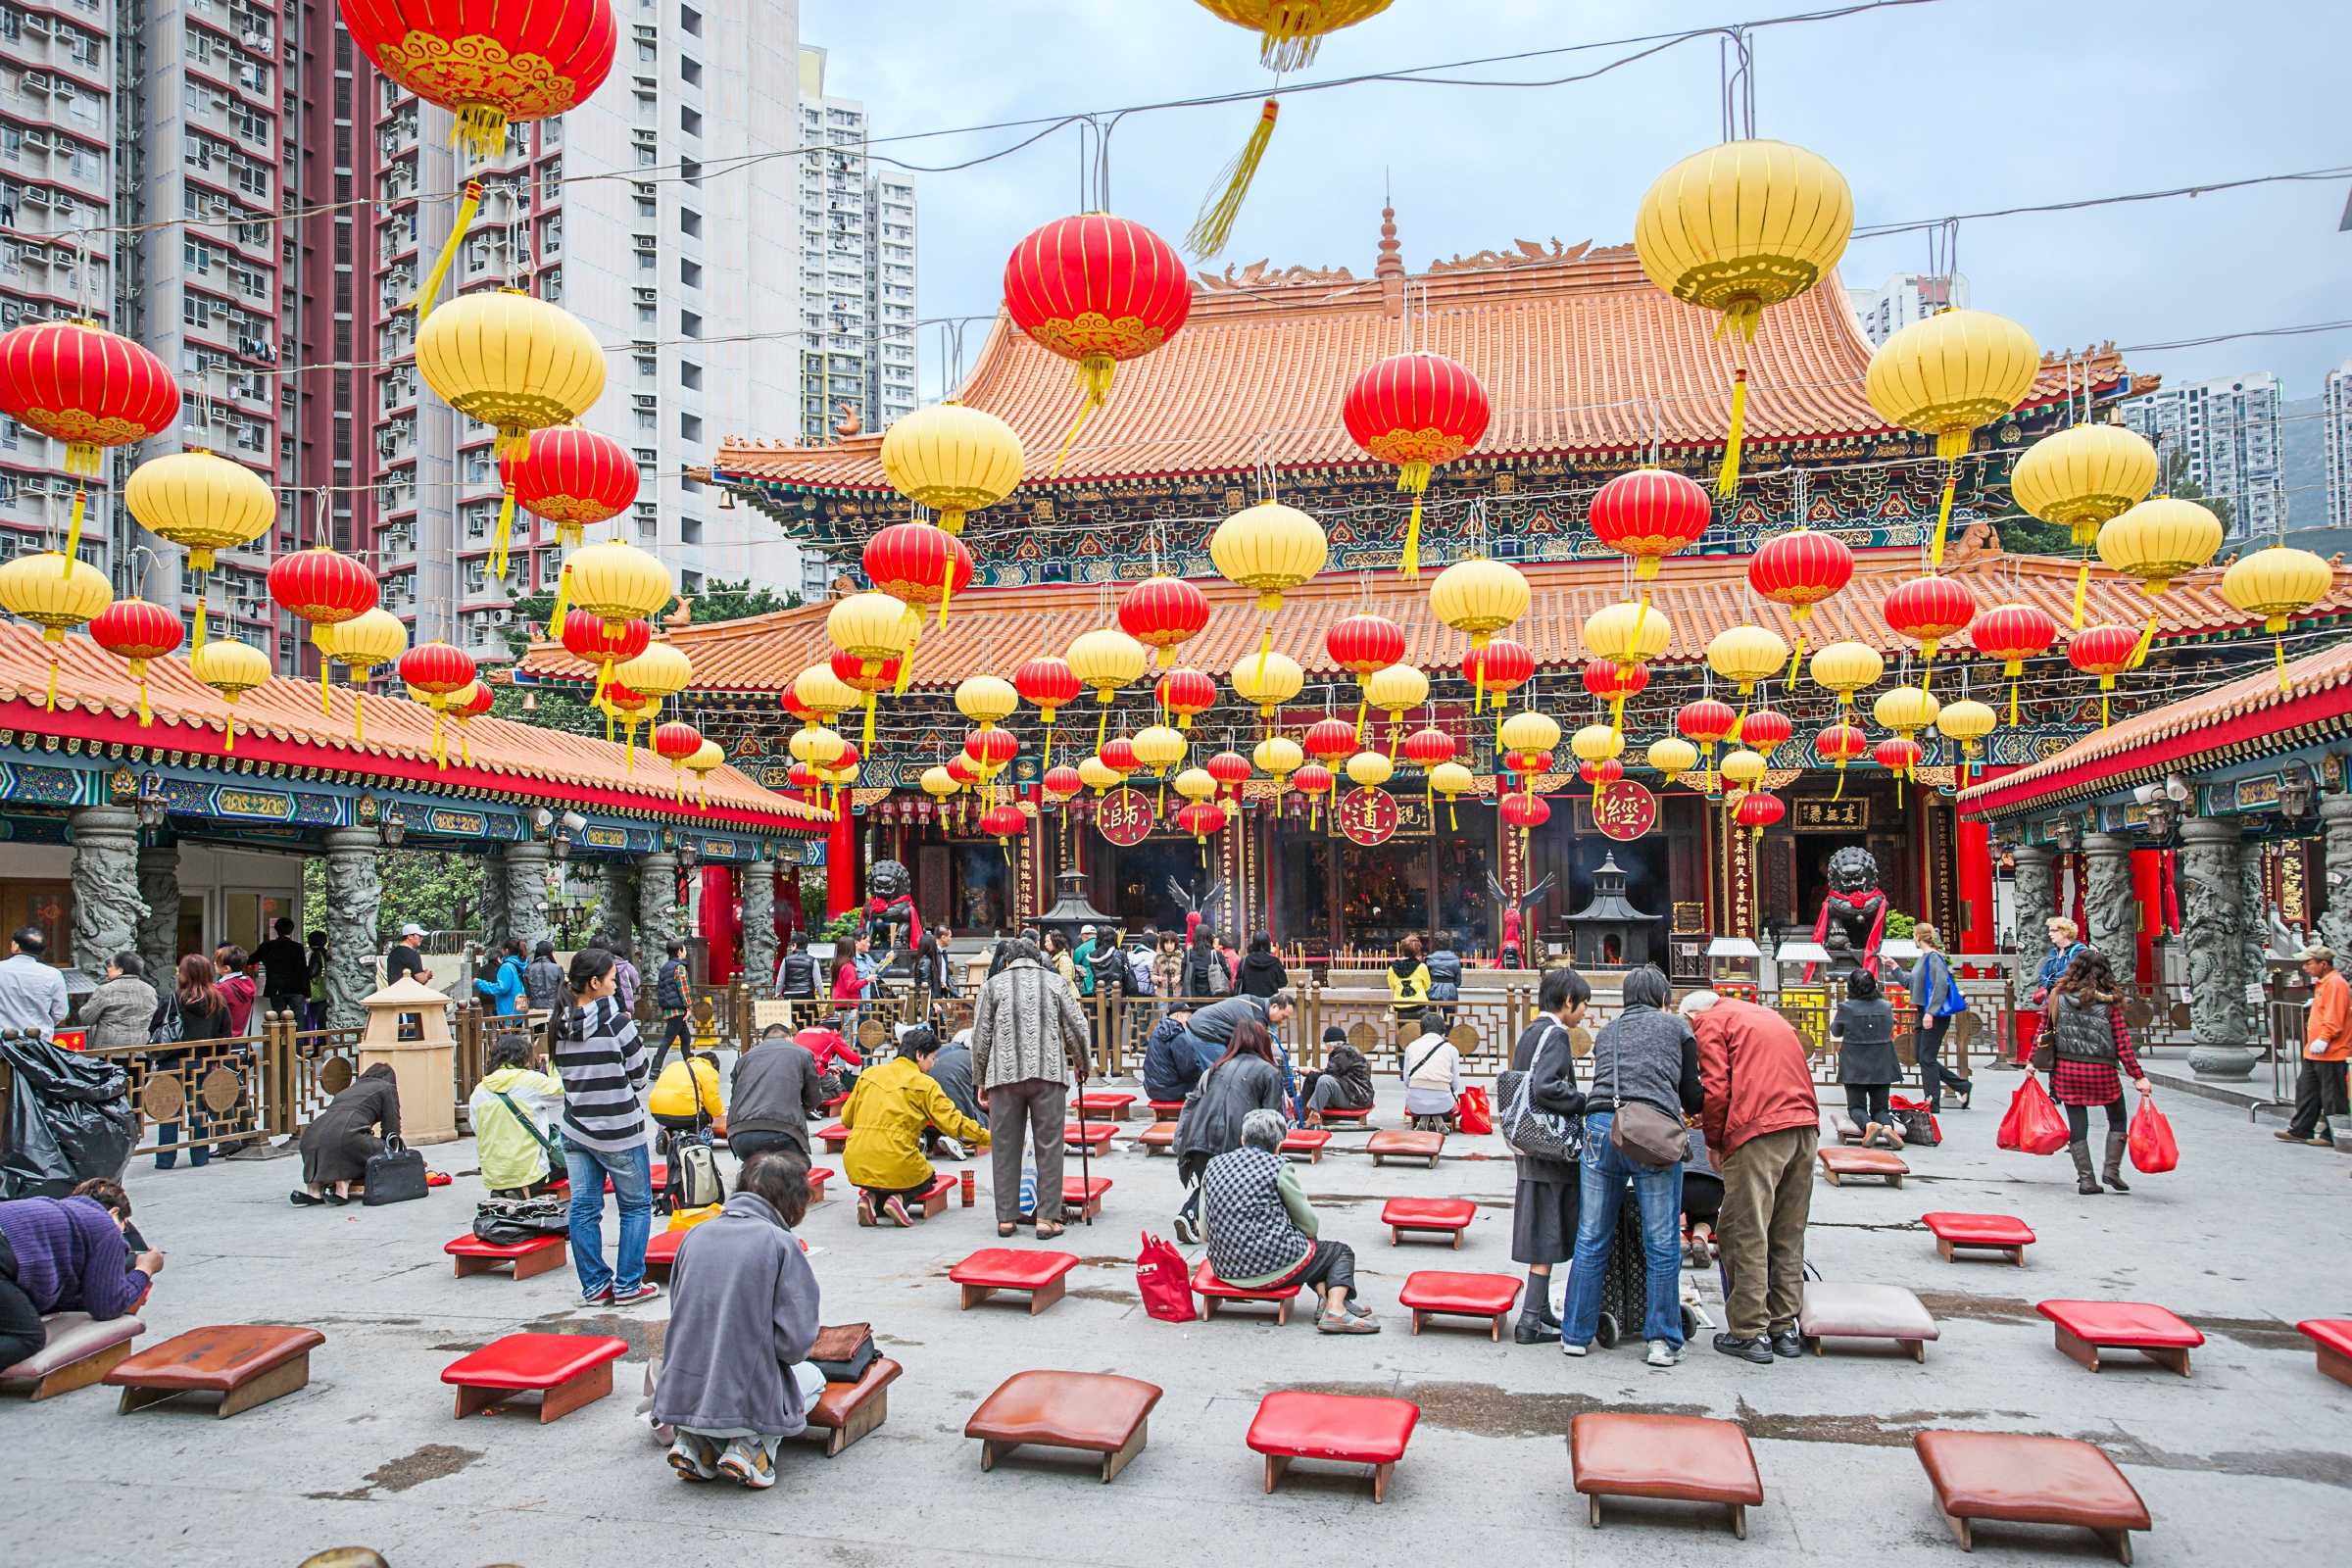 Flights to Hong Kong are 11 per cent cheaper than last year. Image: Roman Babakin/Shutterstock